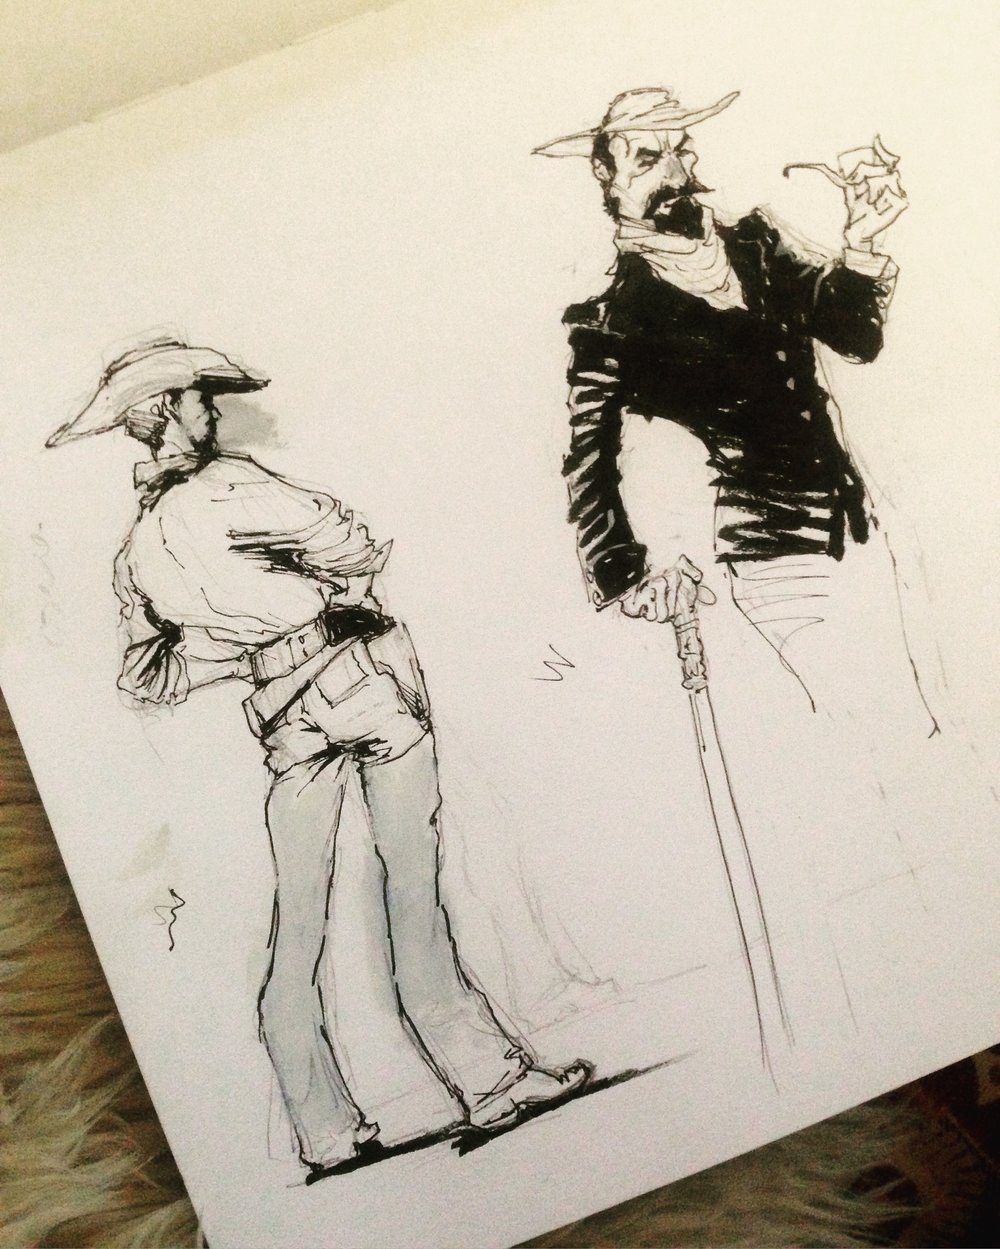 Cowboy ink sketches